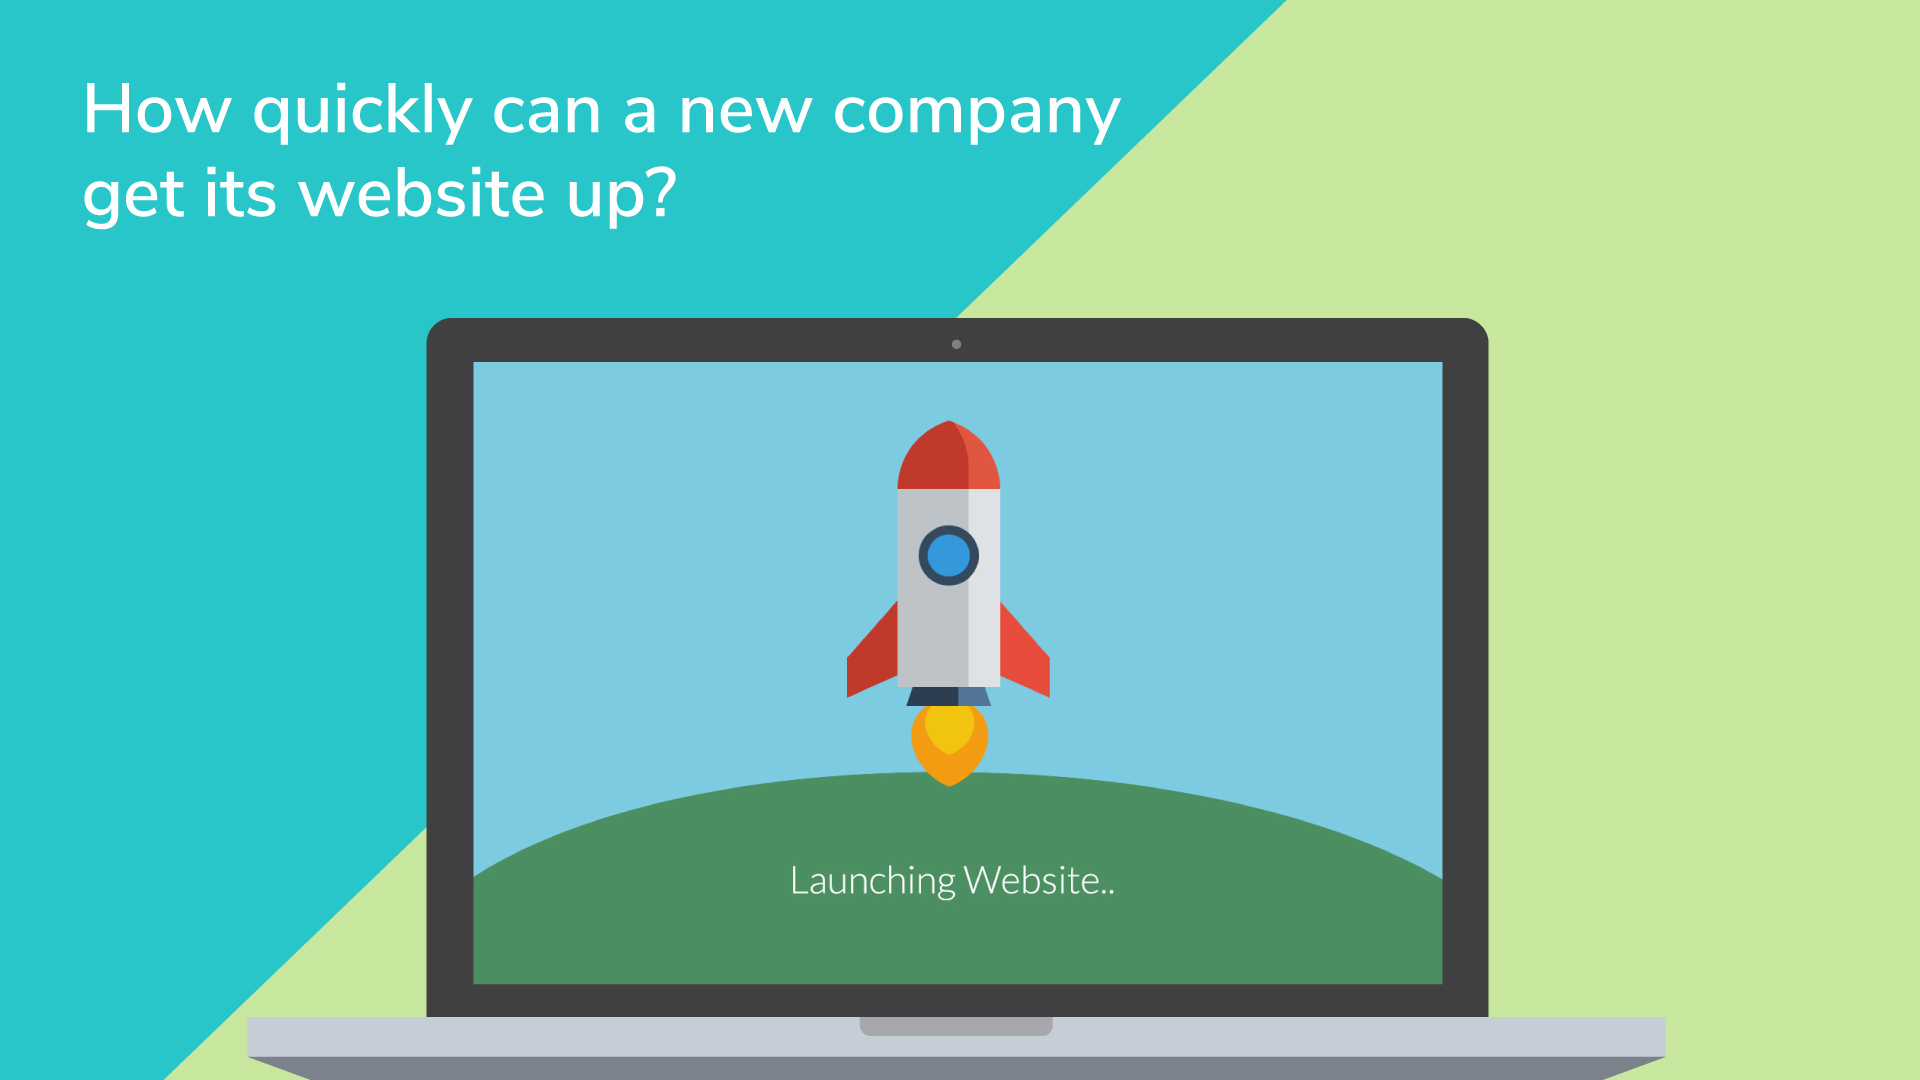 How quickly can a new company get its website up